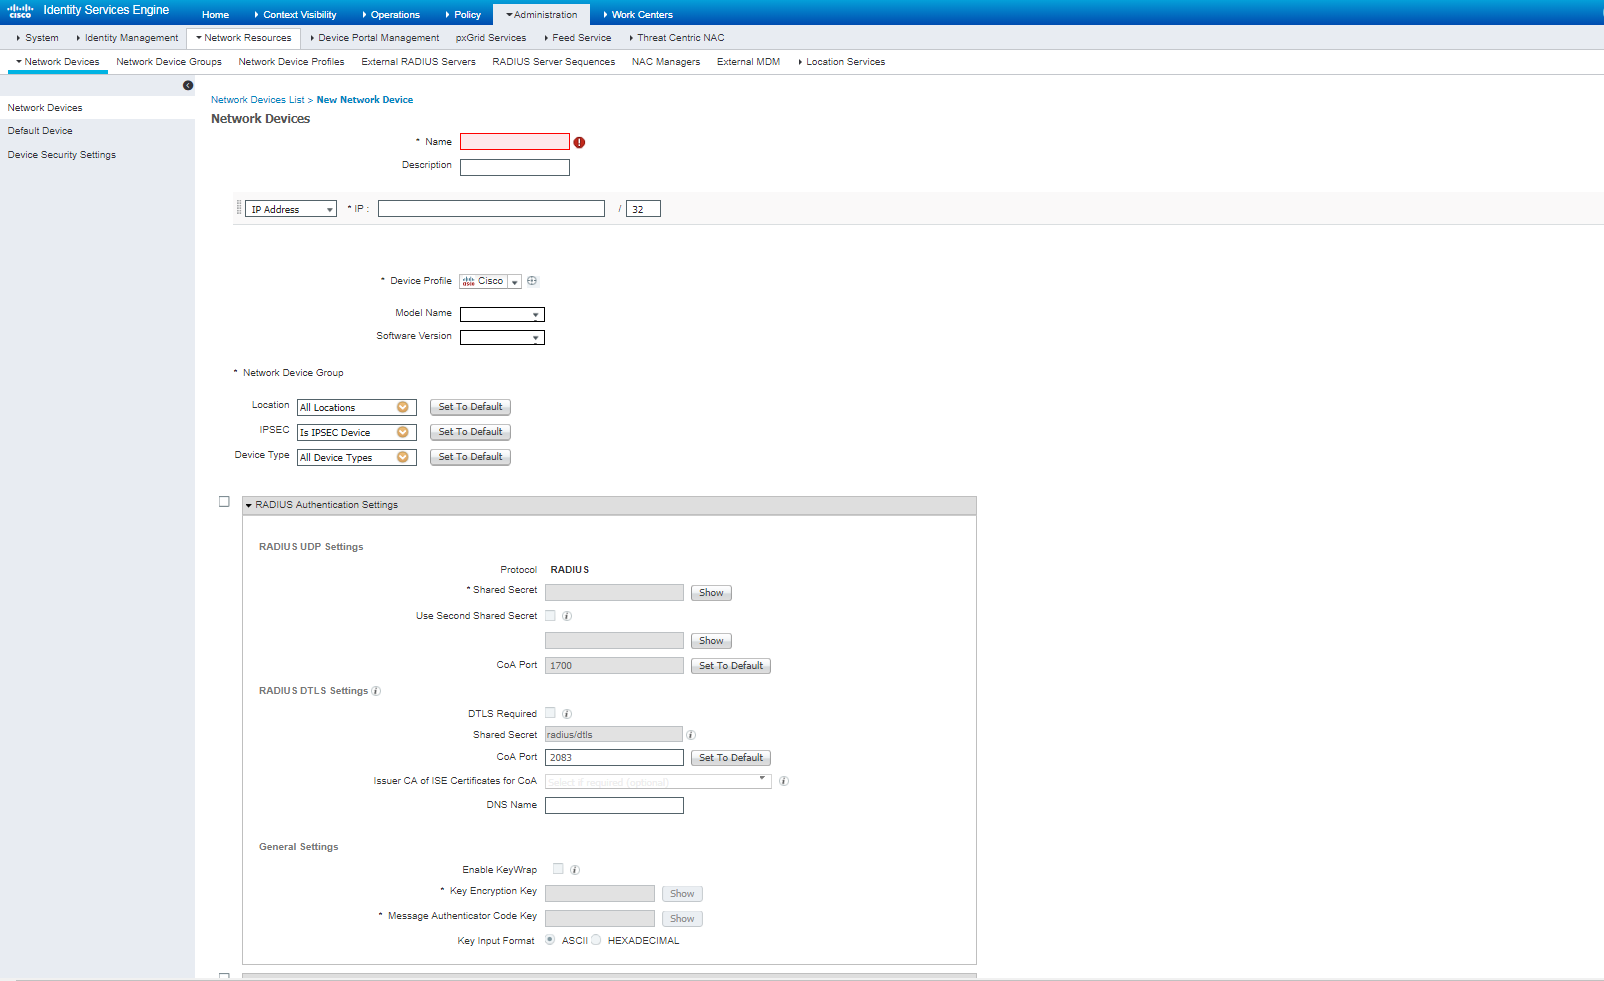 Setting up Cisco-ISE for RADIUS Services to Support Cambium